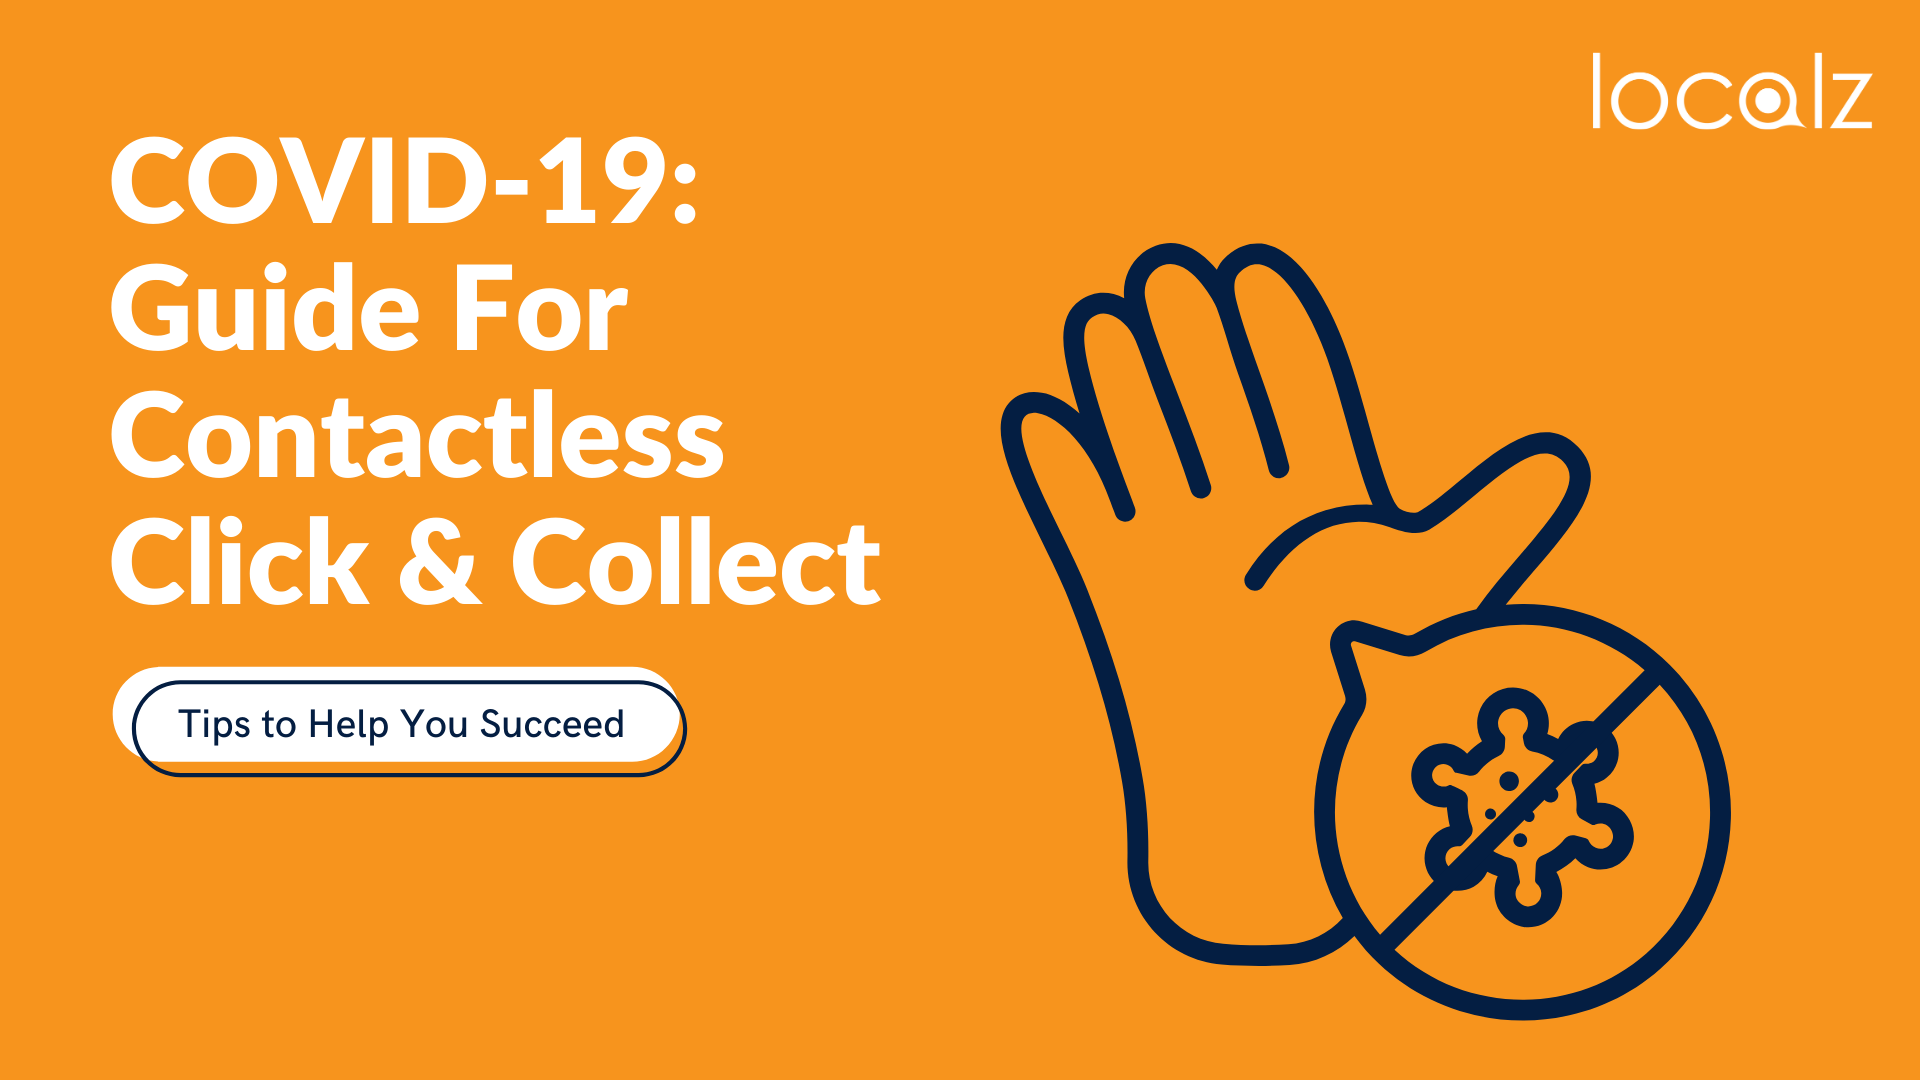 Covid-19 guide to contactless click and collect